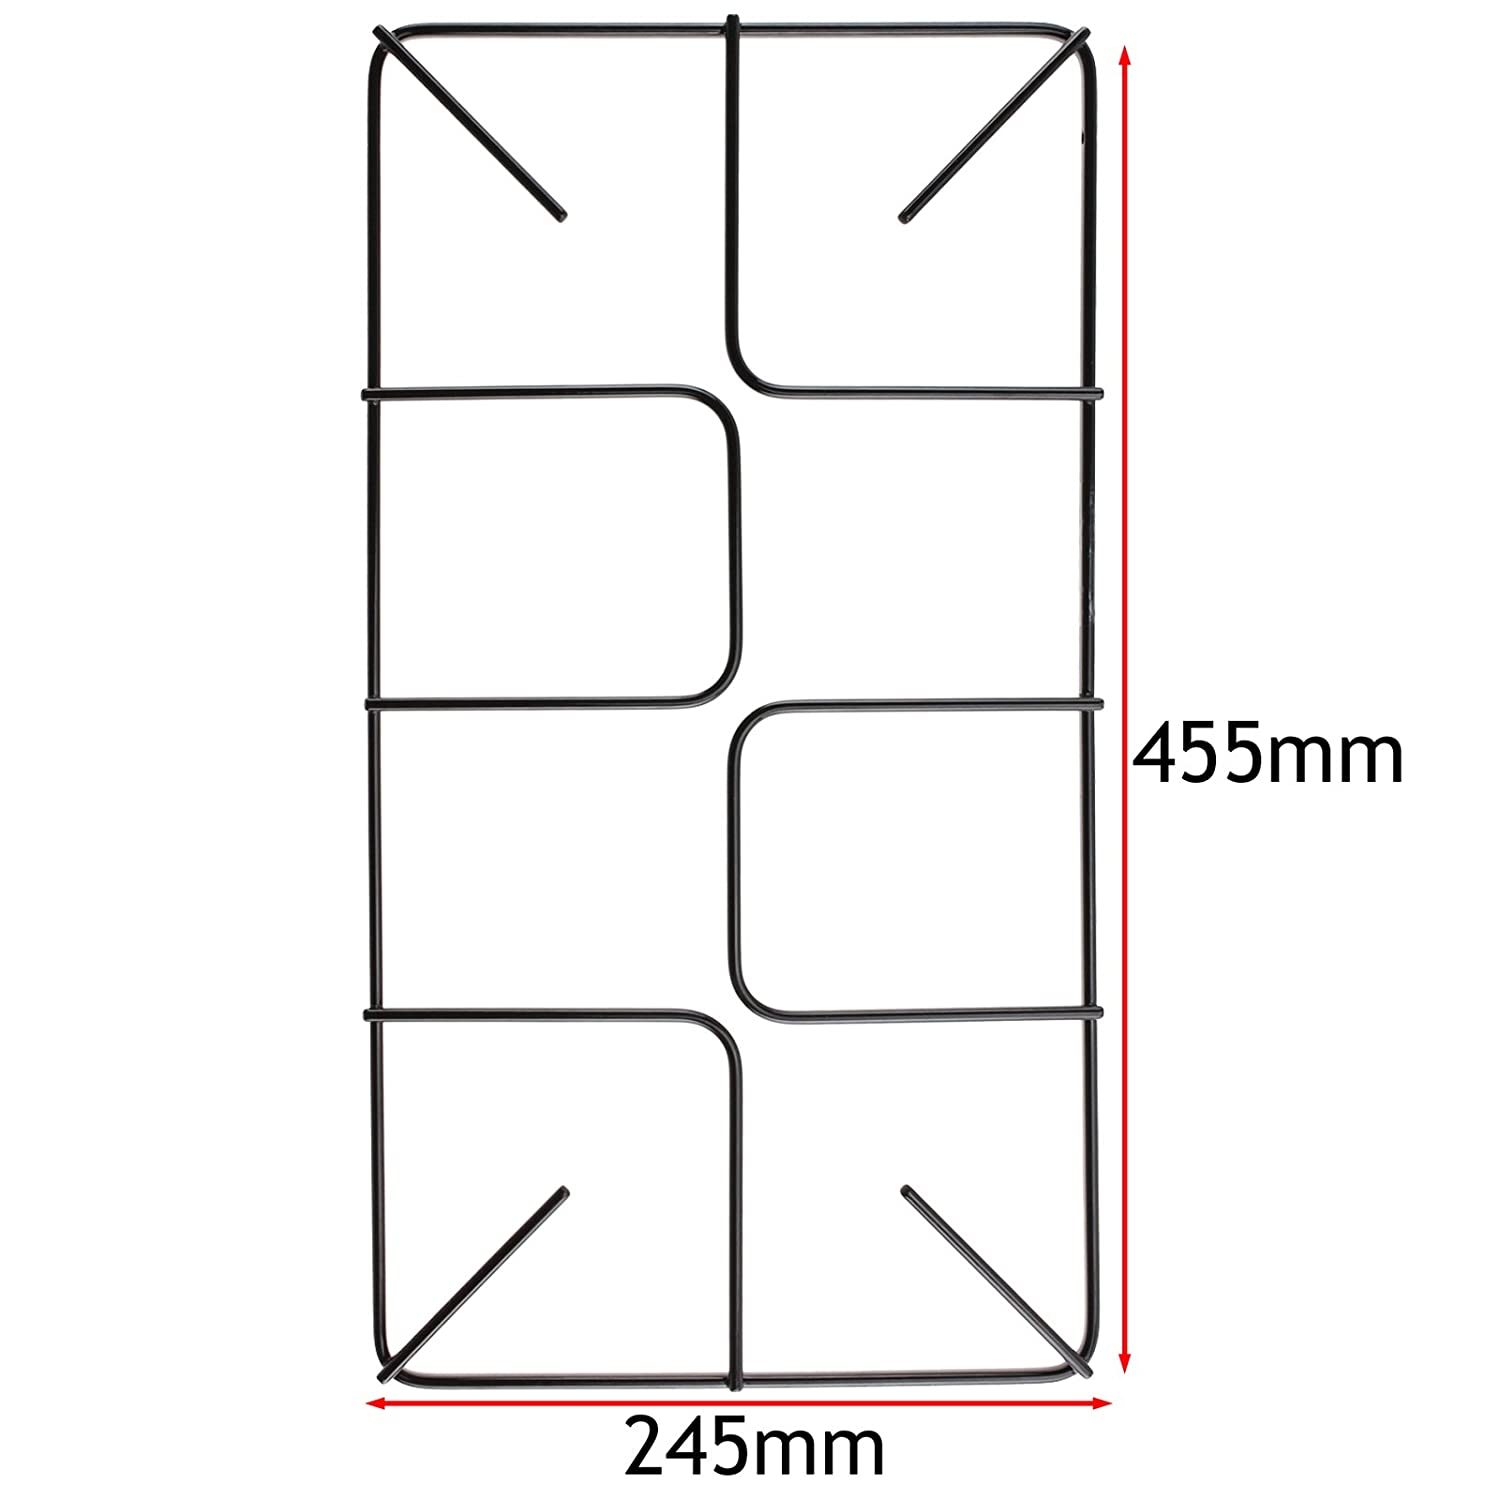 SPARES2GO Flat Gas Hob Pan Support Stand for Bosch Oven Cookers Pack of 2, 455mm x 245mm, Large